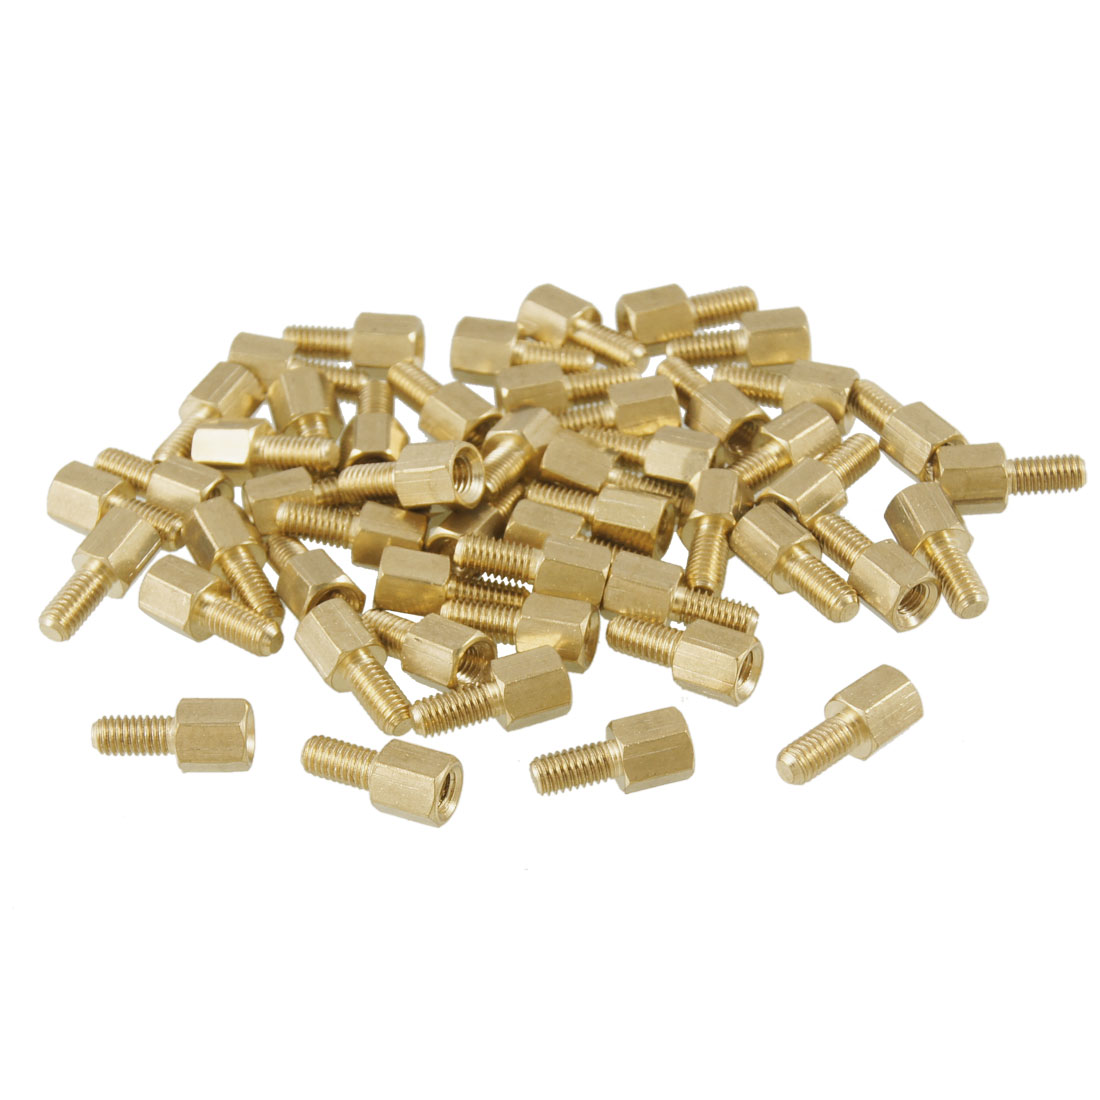 50 Pcs 5mm Body Threaded M3 Male to M3 Female Standoffs Hexagonal Spacers